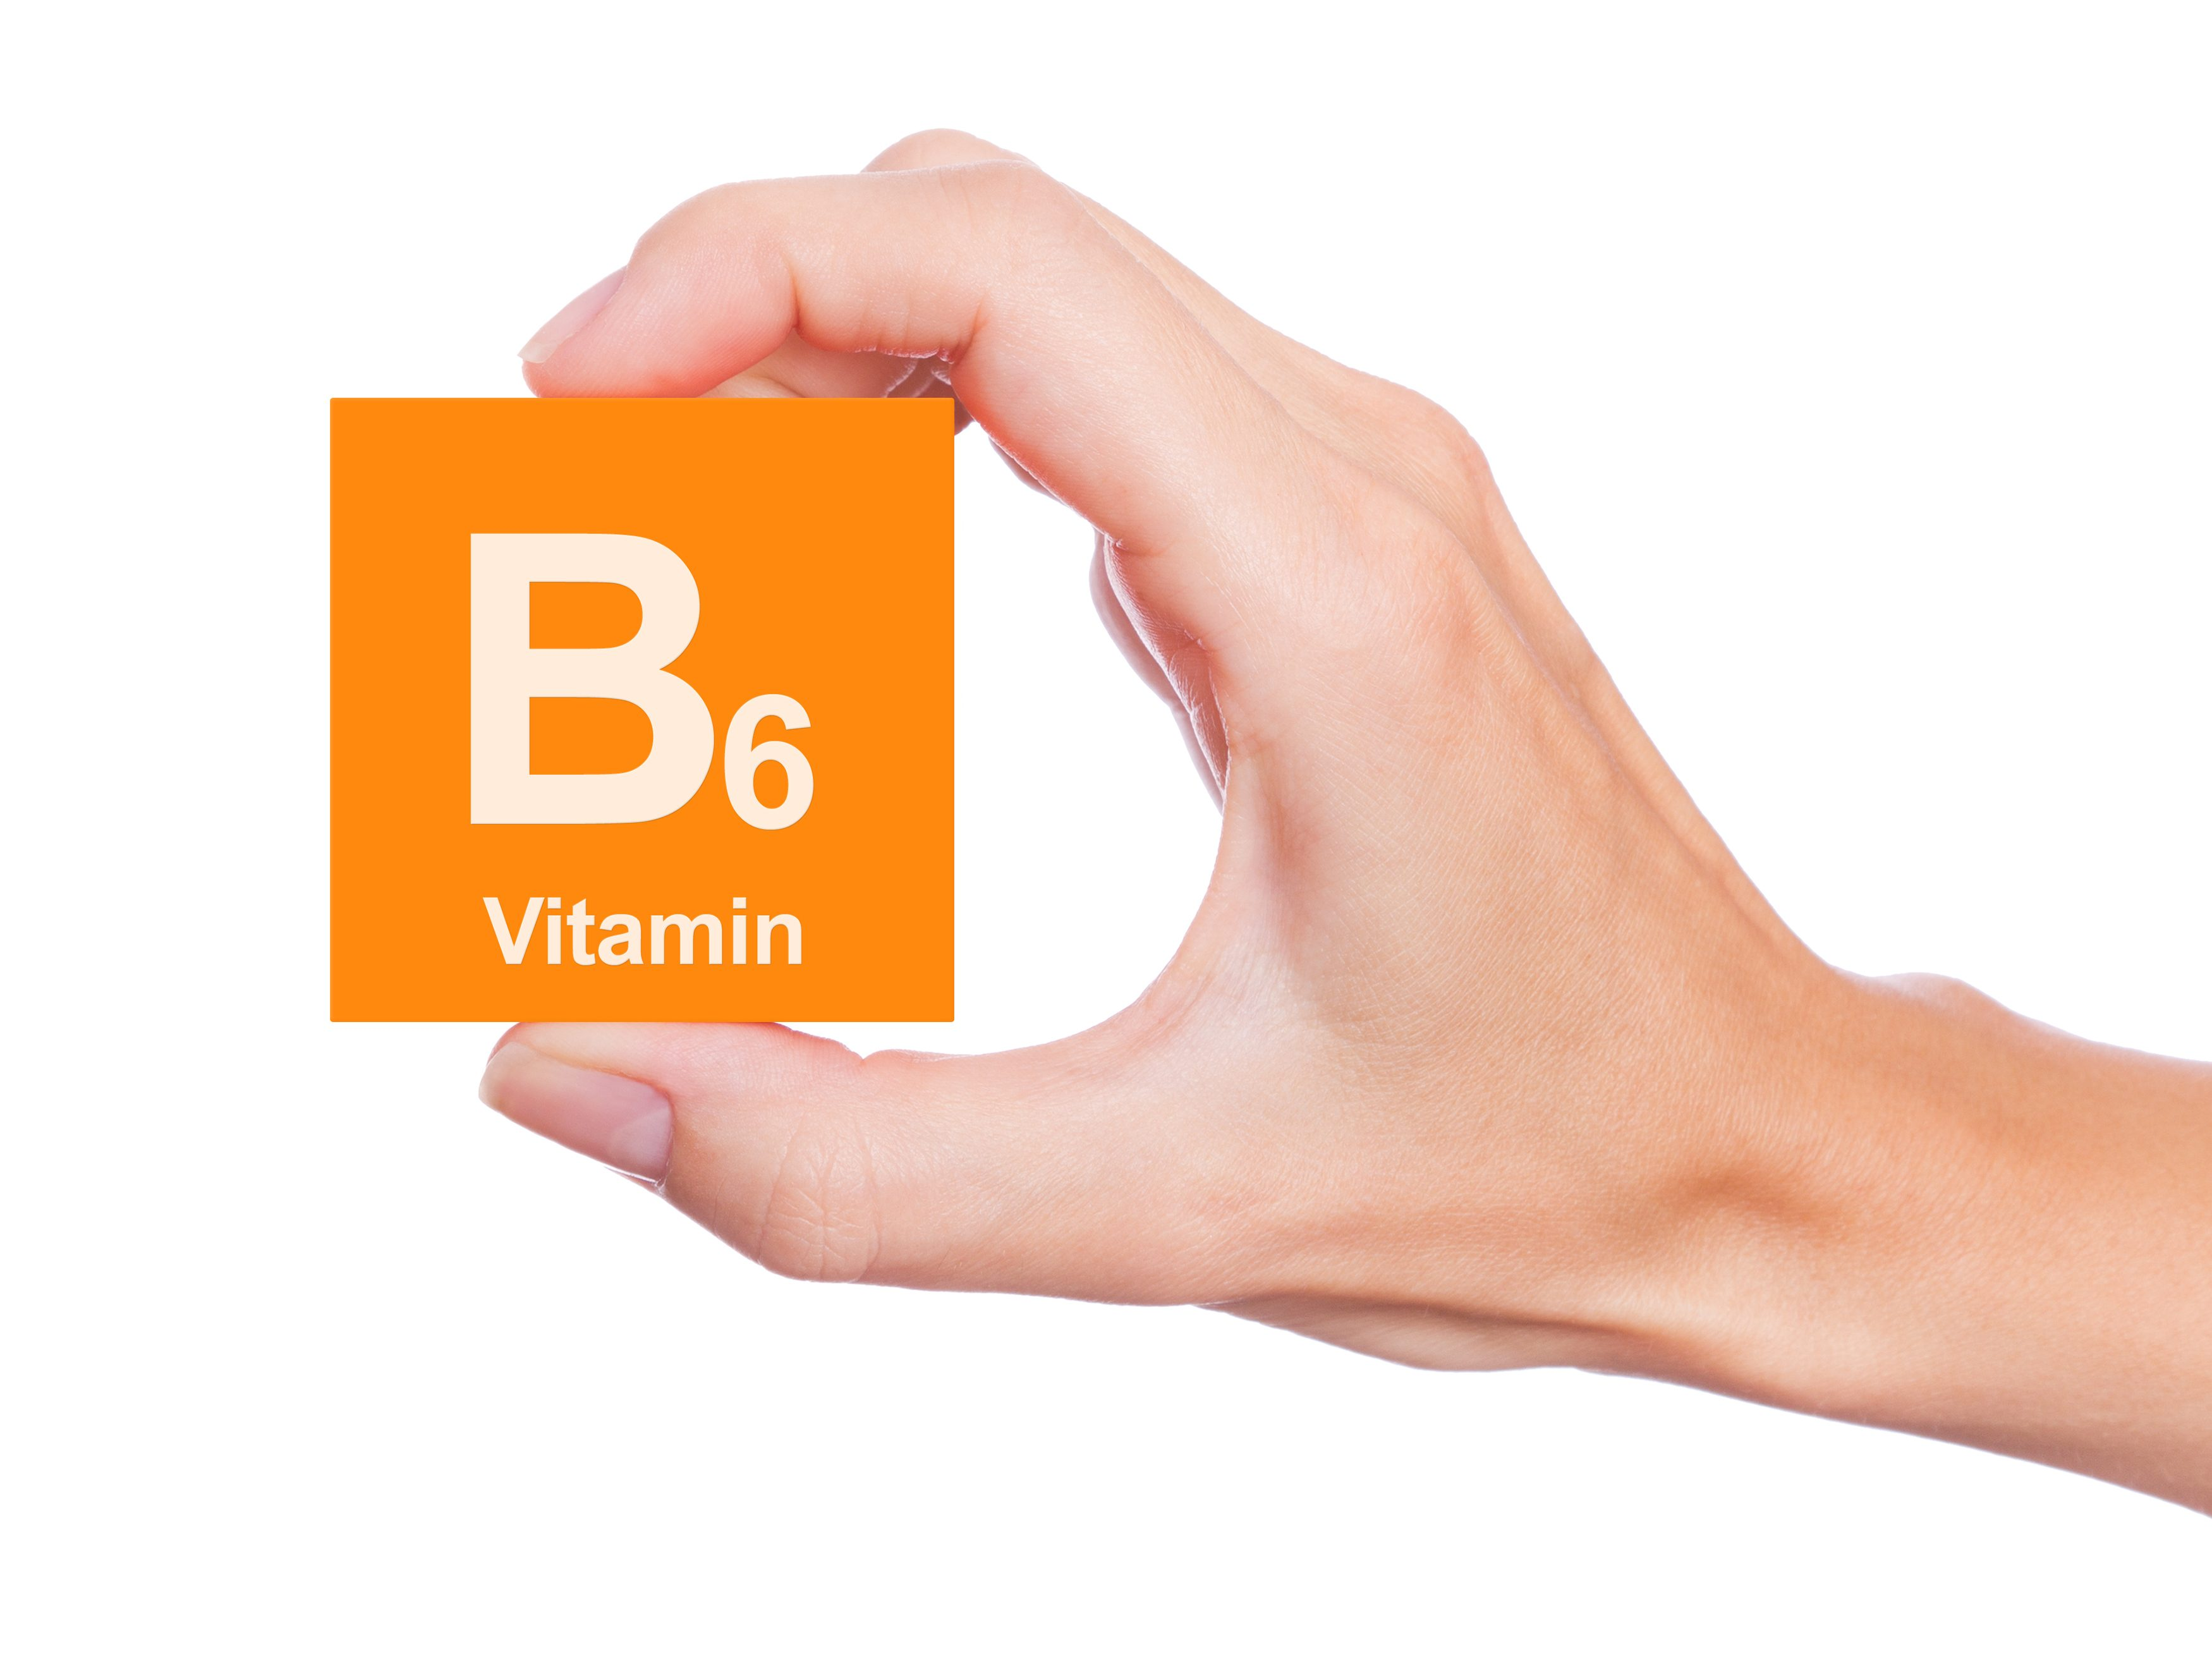 5. Boost your vitamin B6 intake